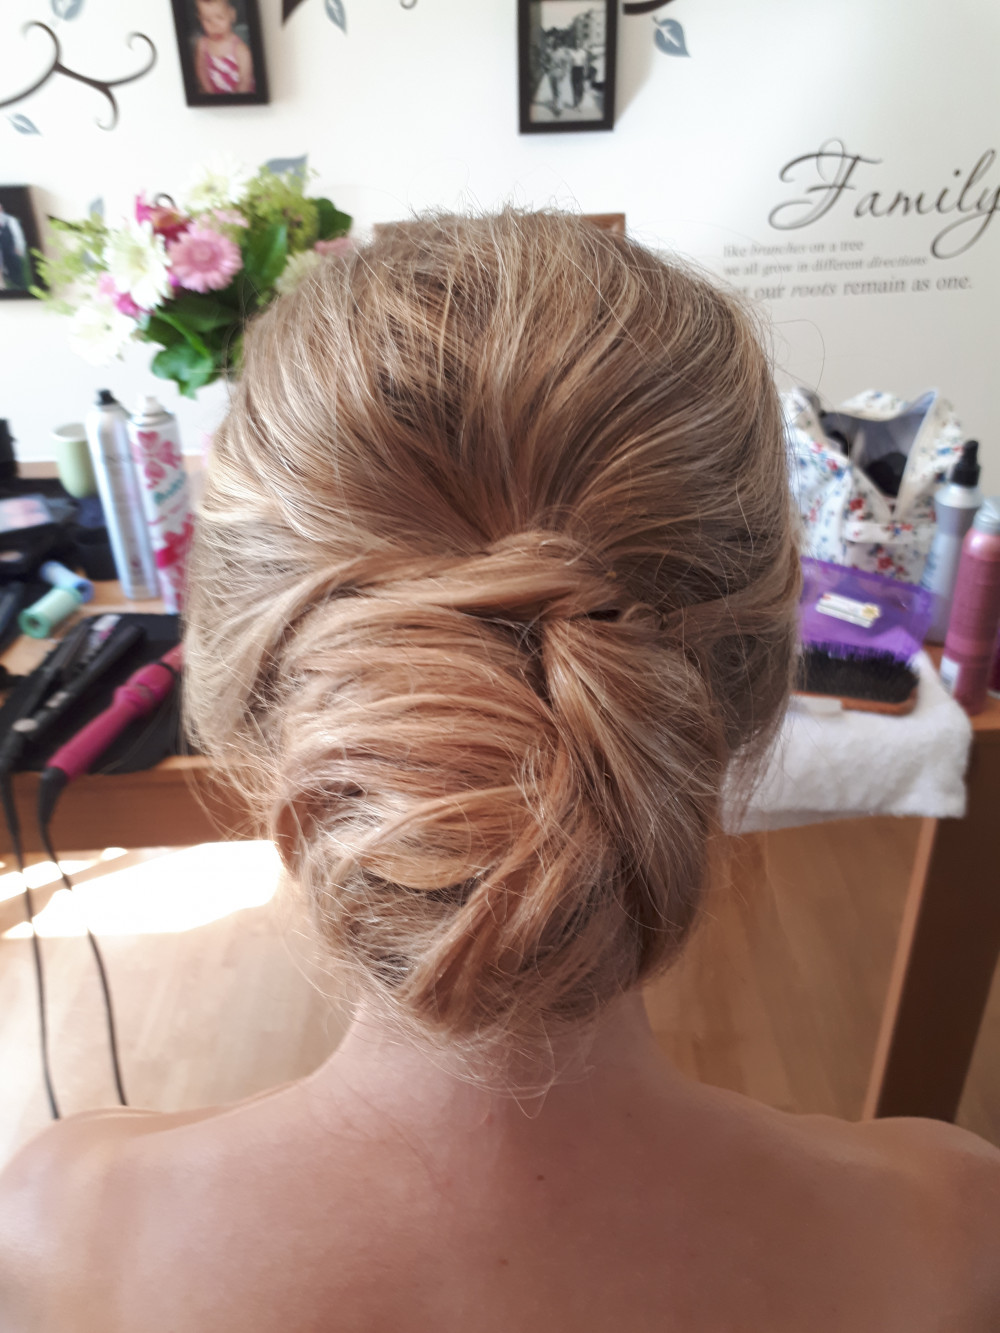 When you want your hair up but in a naturally soft way,  A soft elegant undone bun x - Make Me Bridal Artist: Bridal hair by Jennie . Photography by: Bridal hair by Jennie . #bridalhair